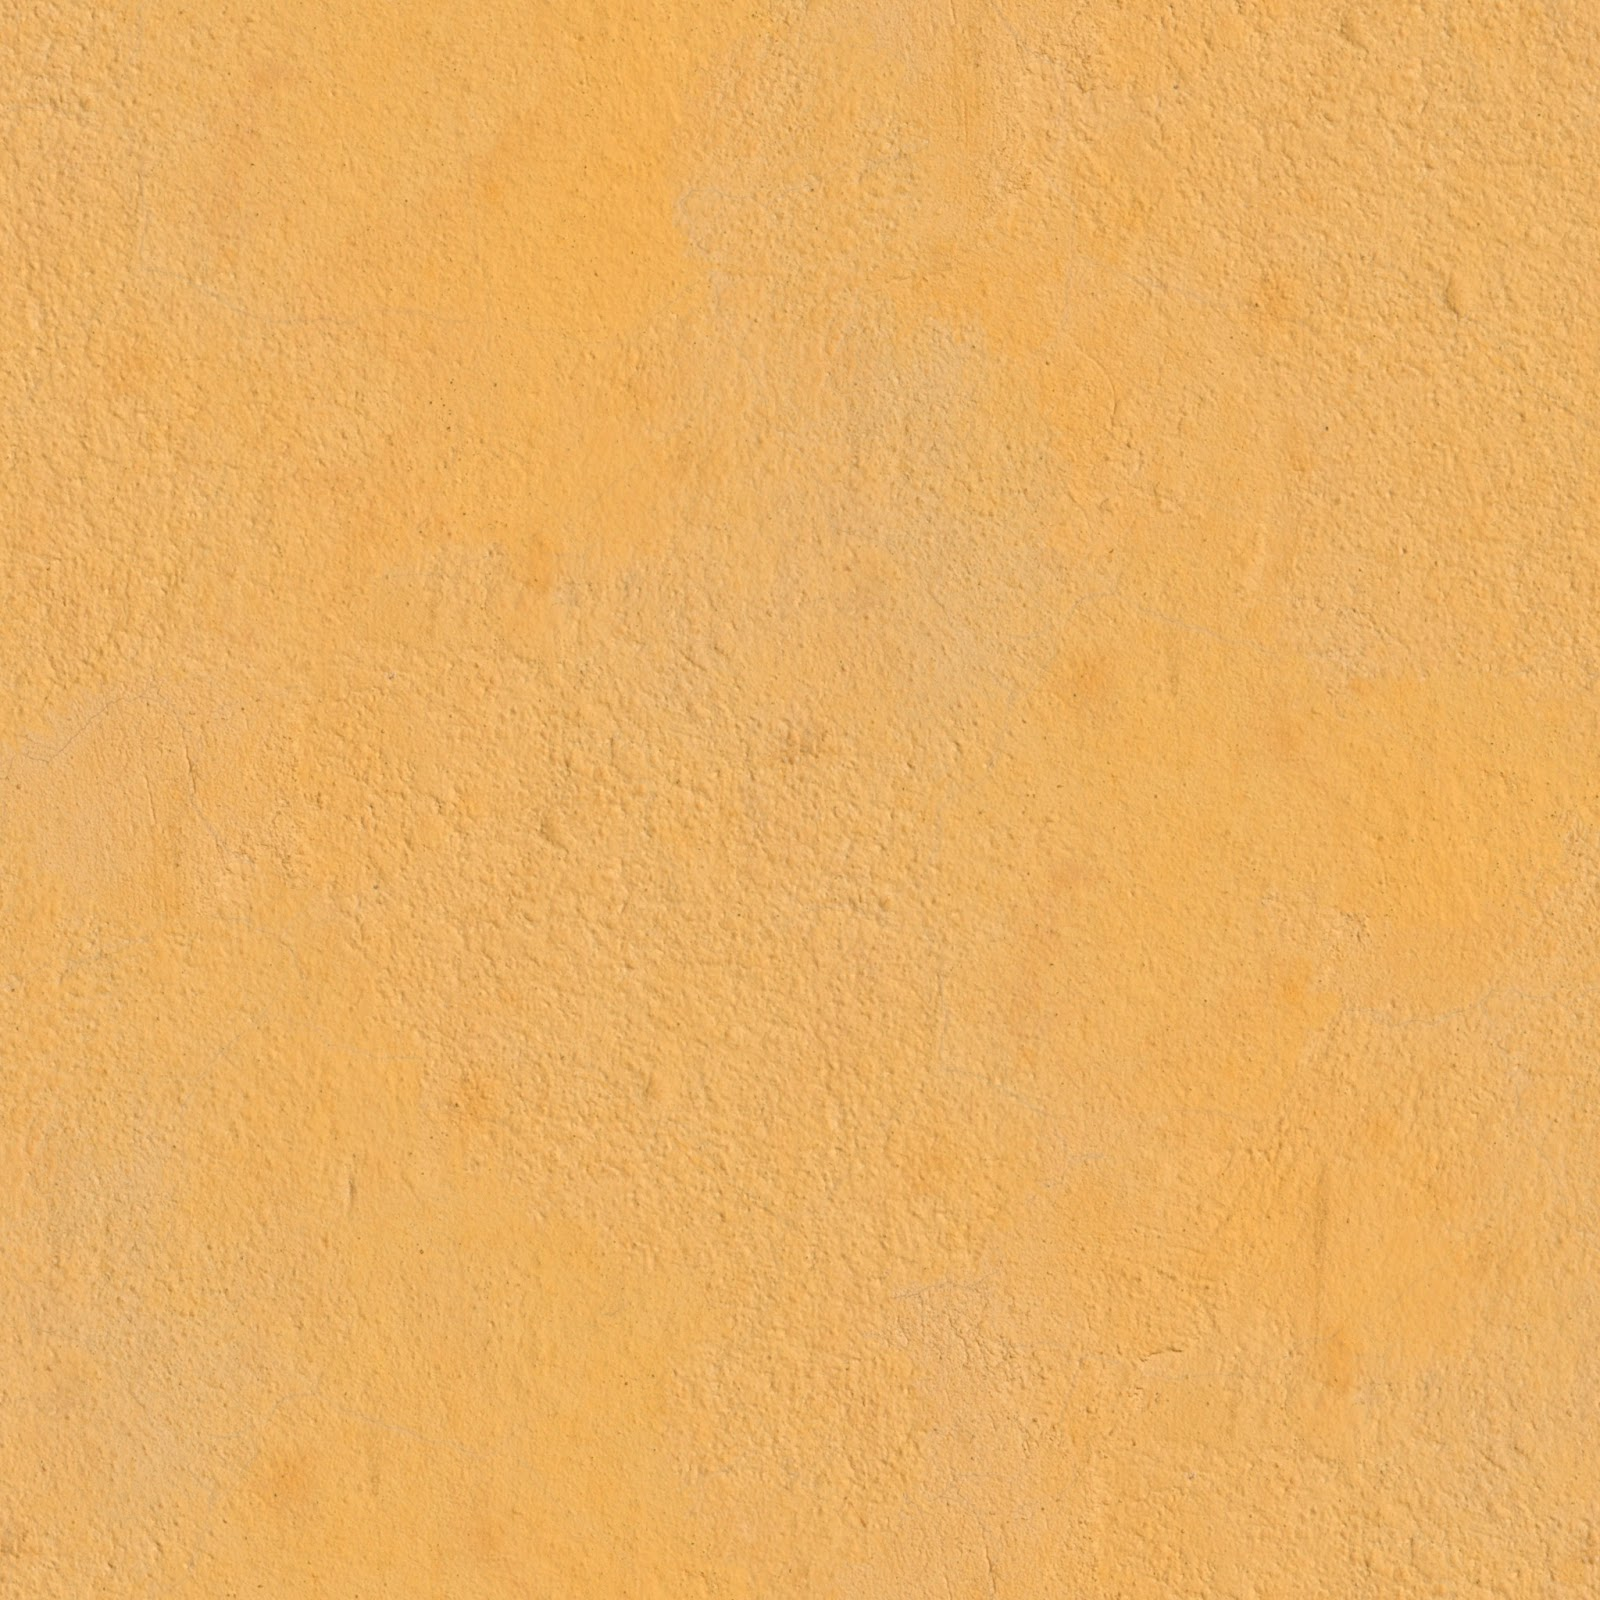 Stucco light orange wall plaster seamless texture 2048x2048